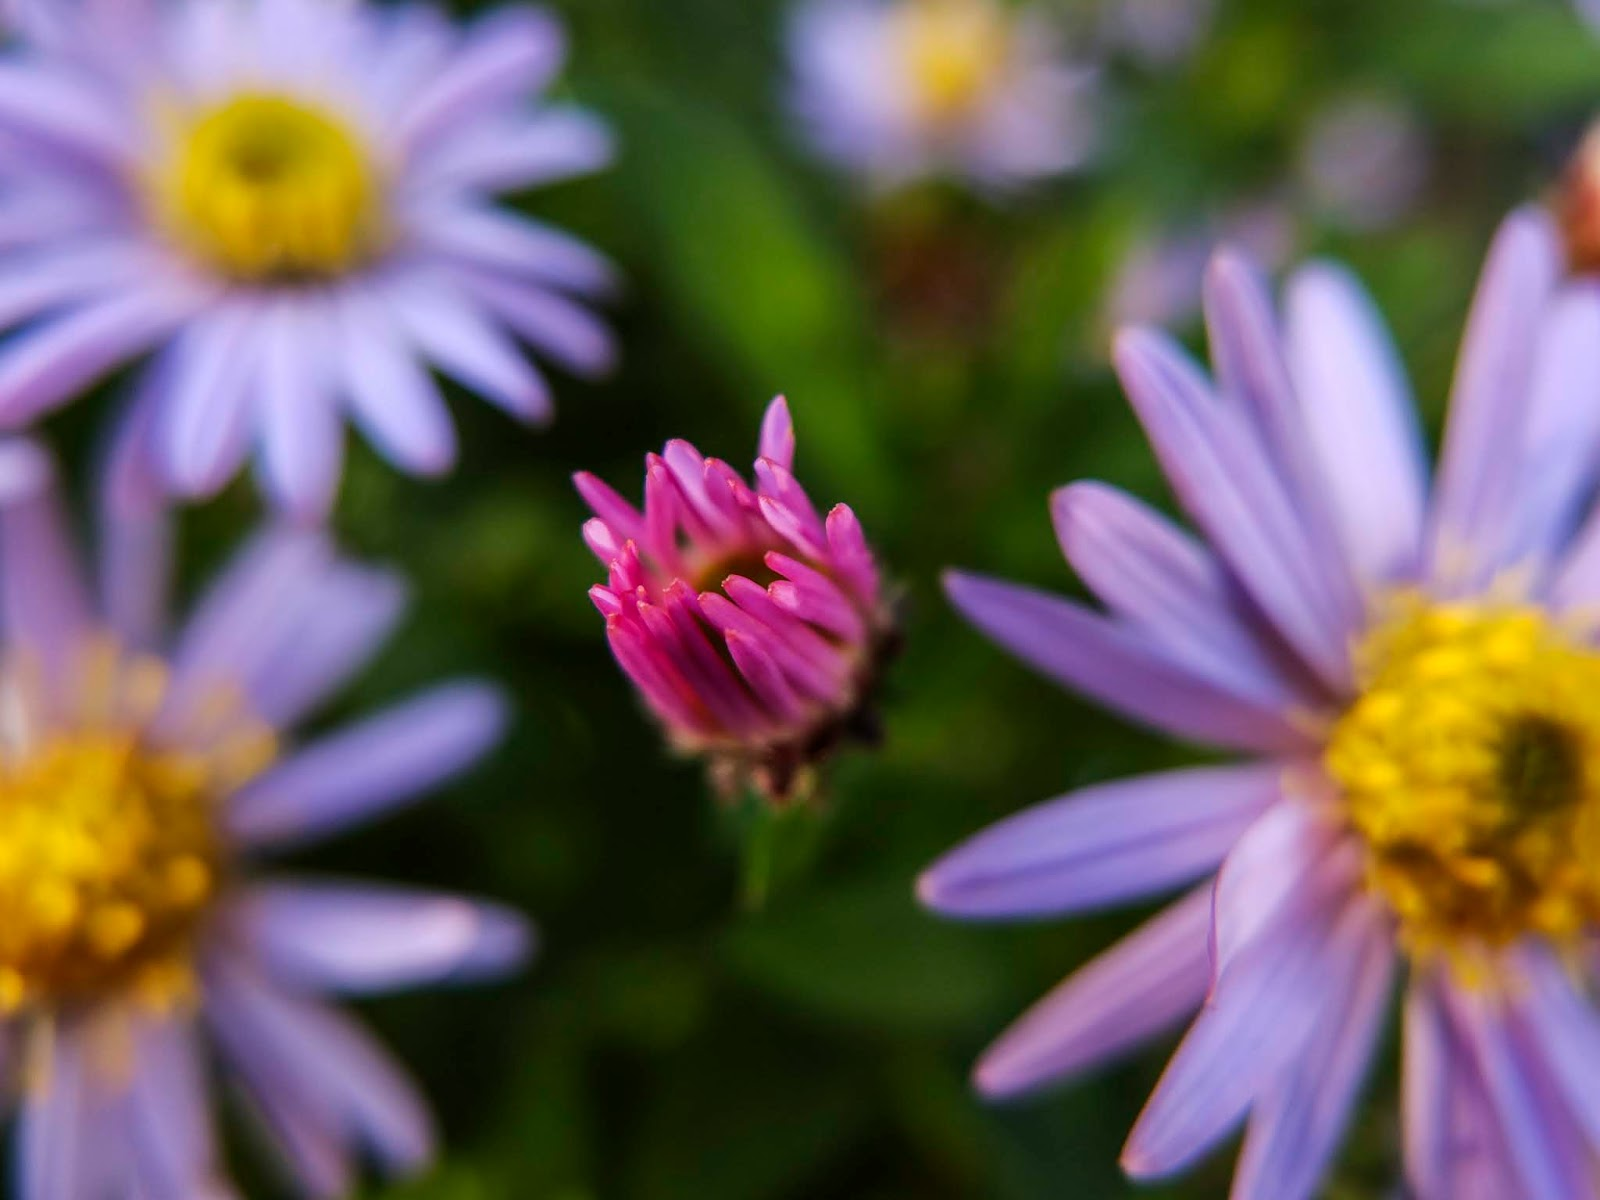 A close up of purple Aster blooms at sunset.